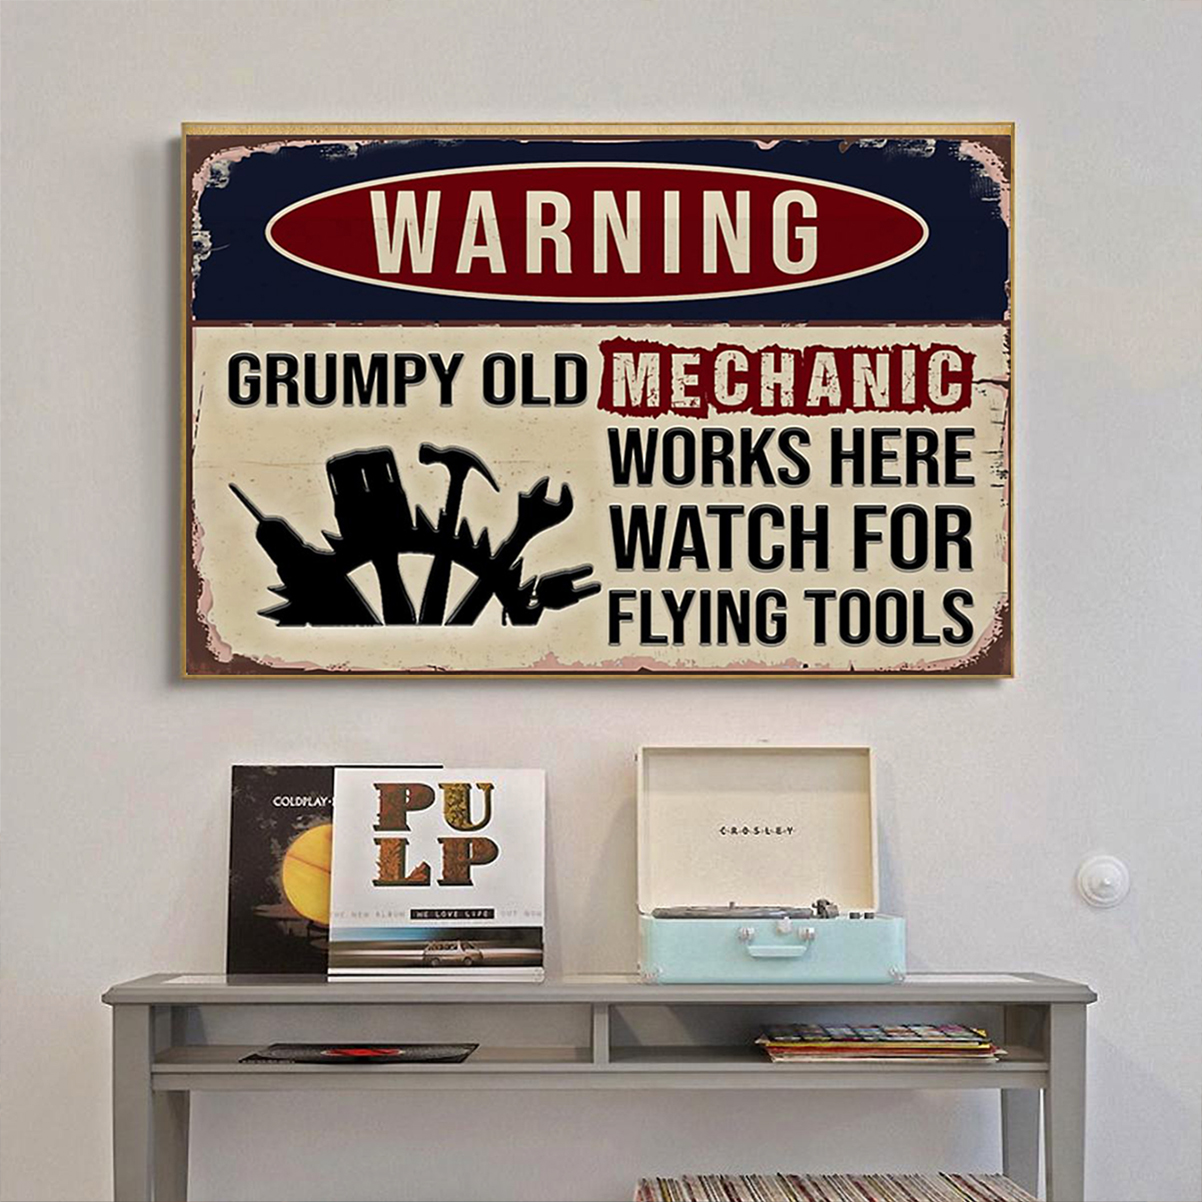 Warning grumpy old mechanic works here watch for flying tool poster A1